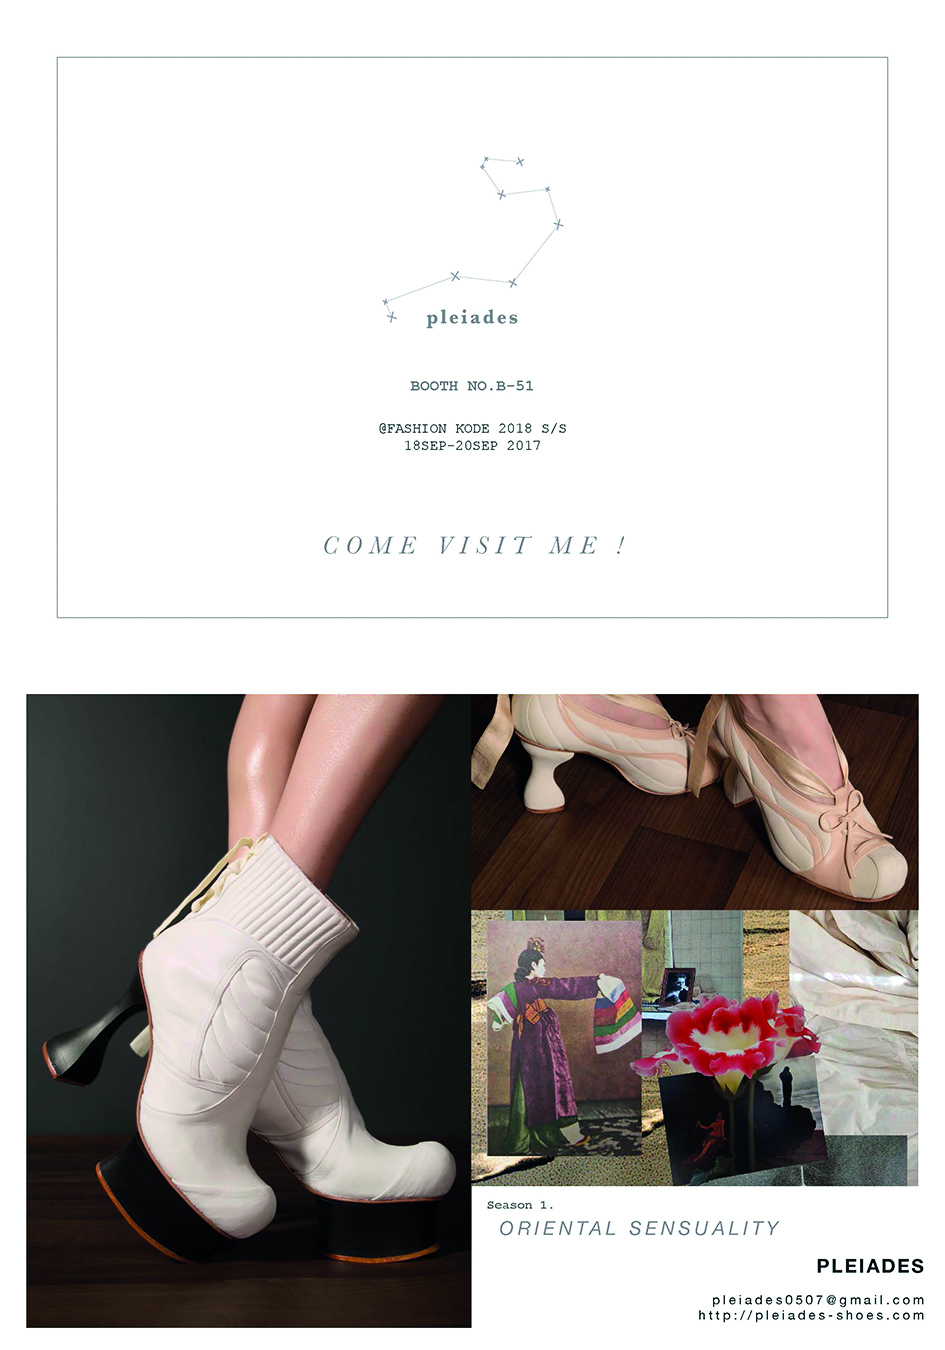 FASHION KODE S/S18 - BOOTH NO.B-2118-20SEP 2017 IN SEOUL@ S-FACTORY